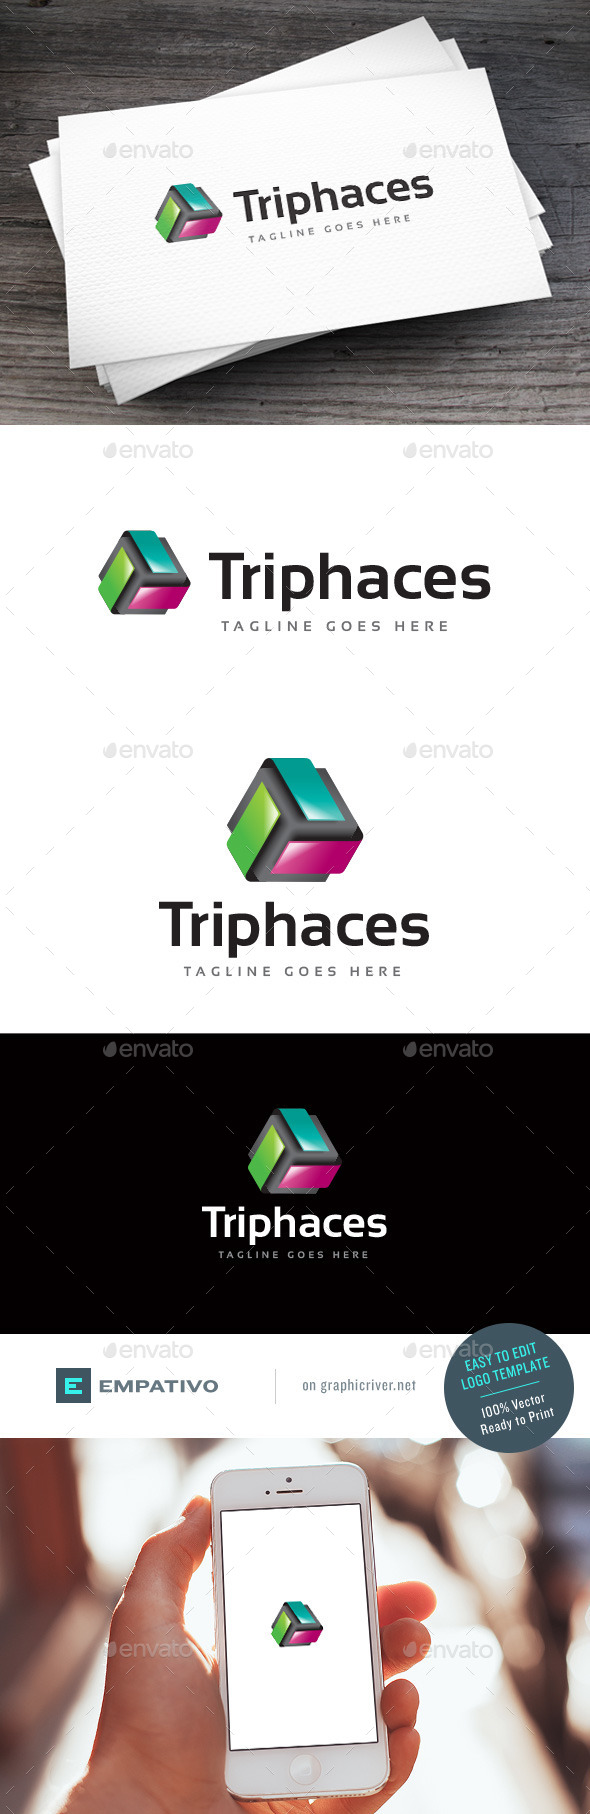 GraphicRiver Triphaces Logo Template 11378650